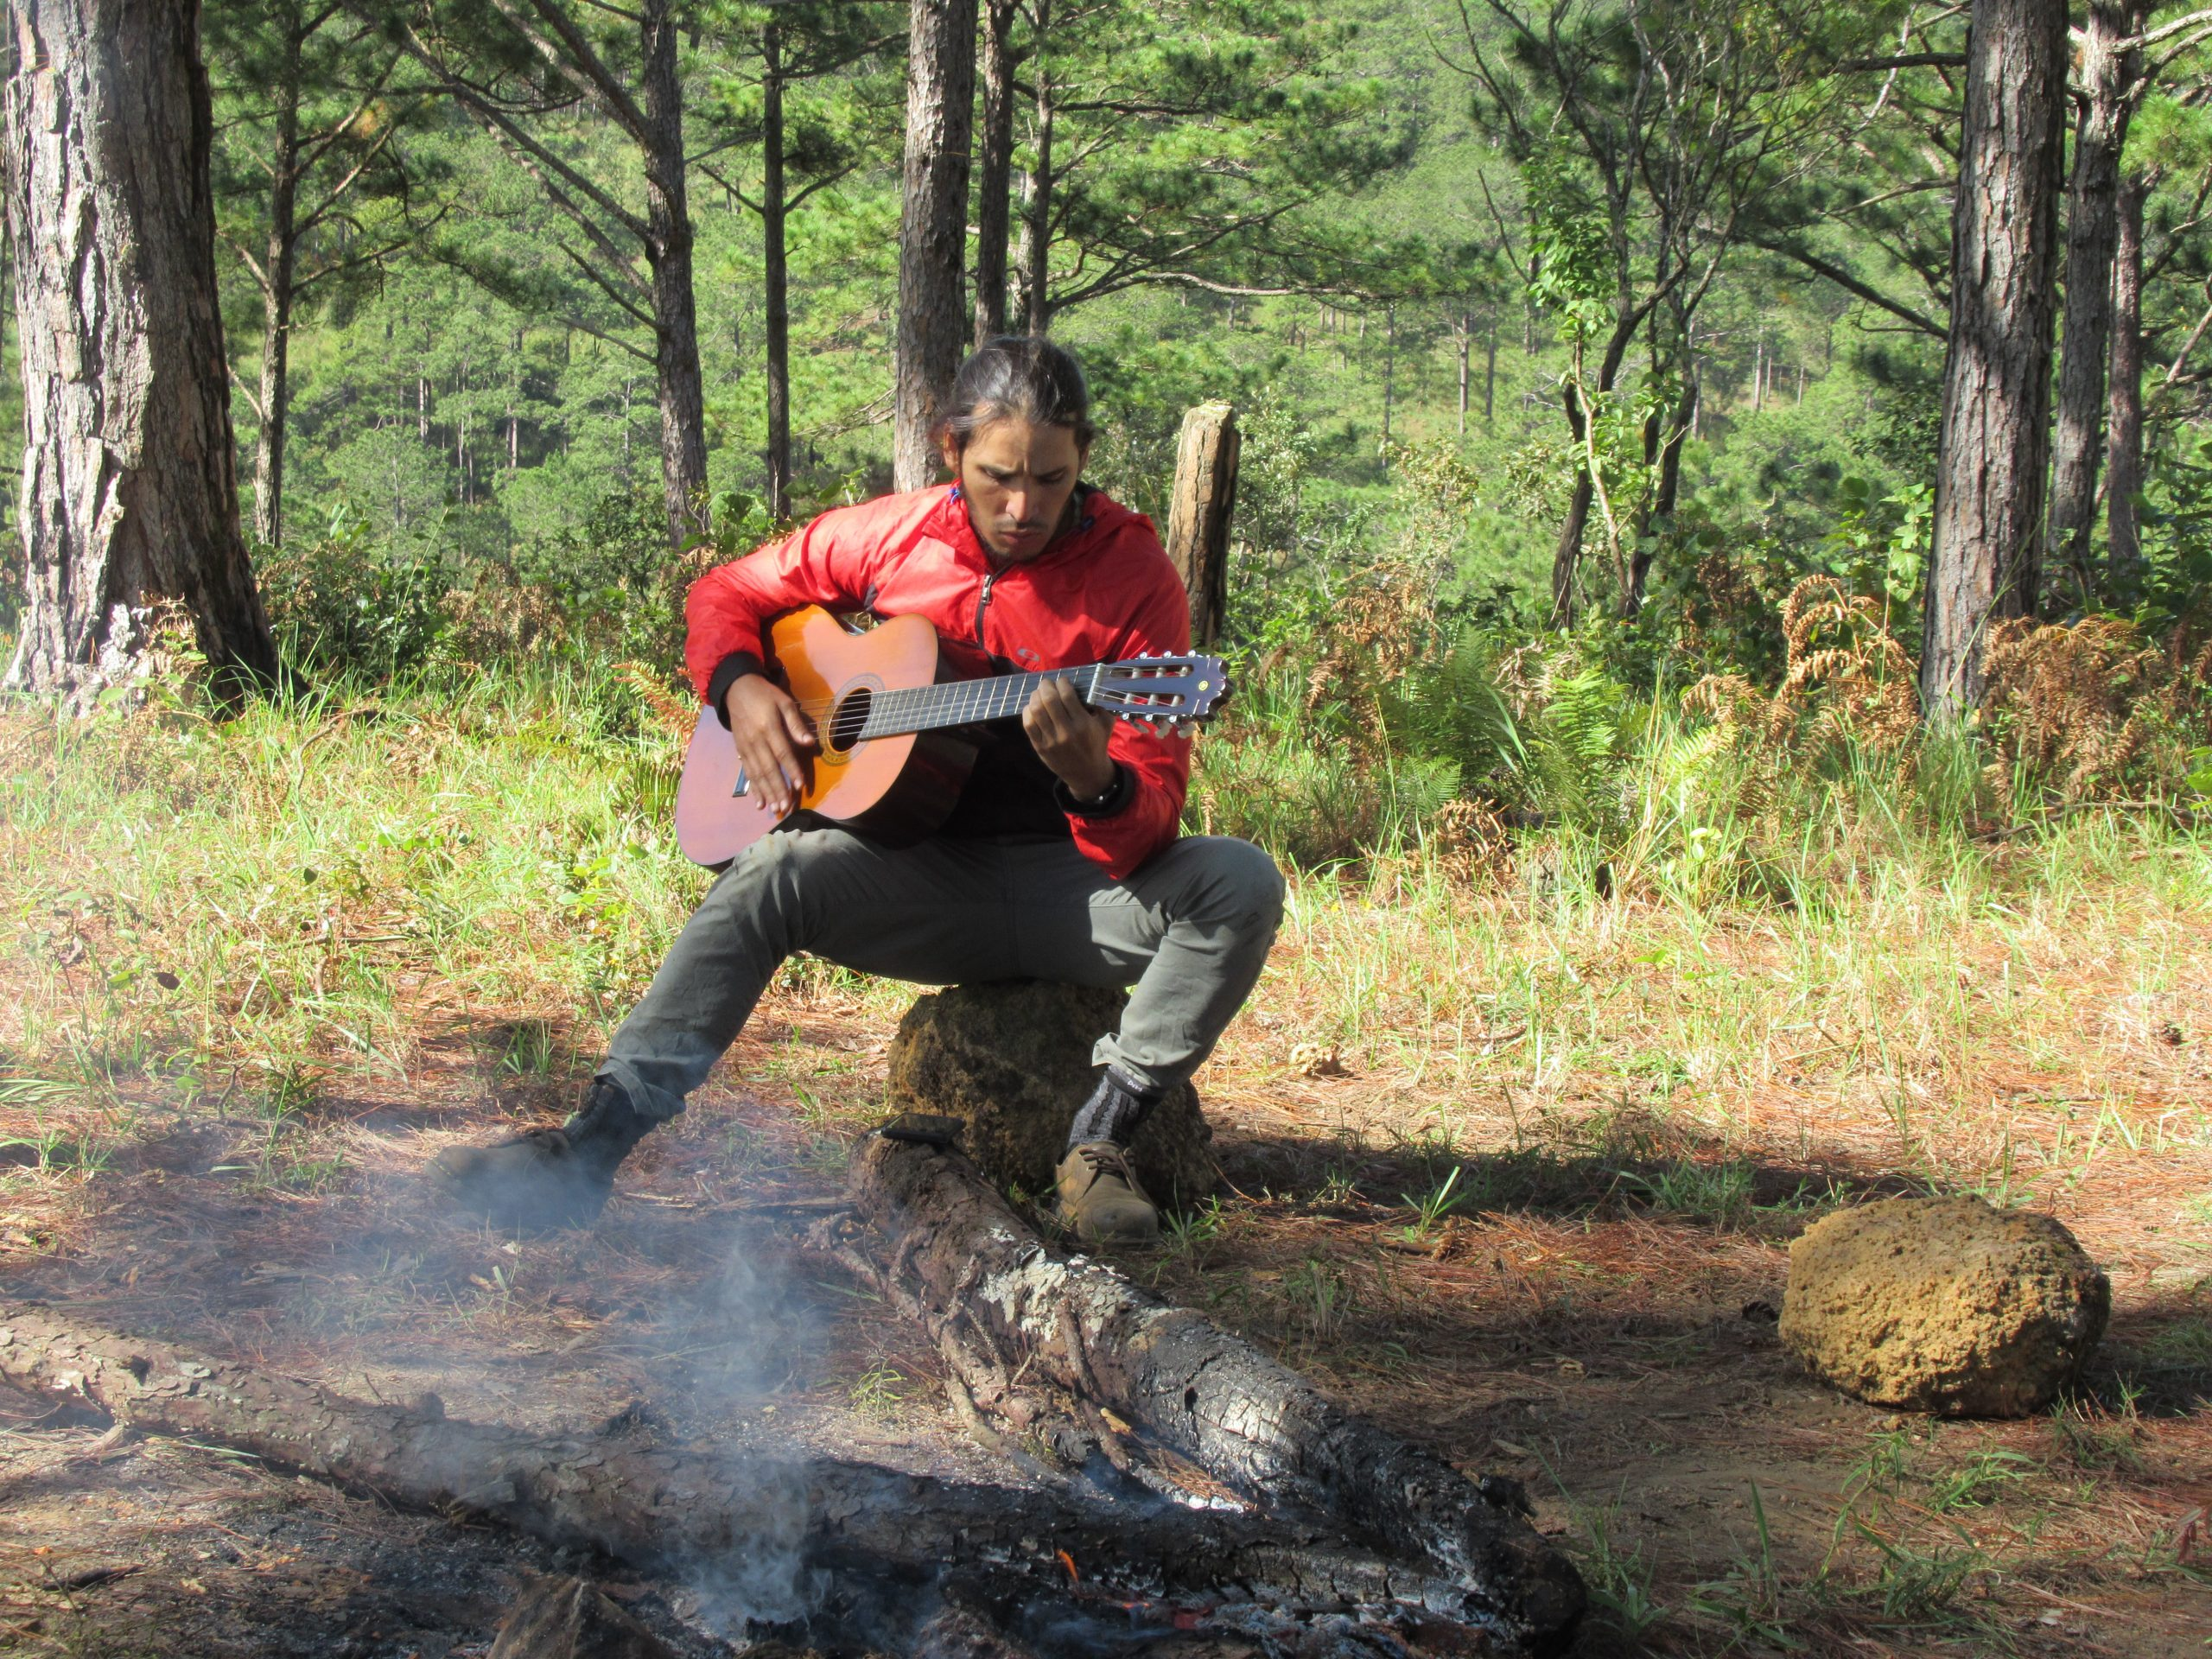 Playing guitar around the campfire